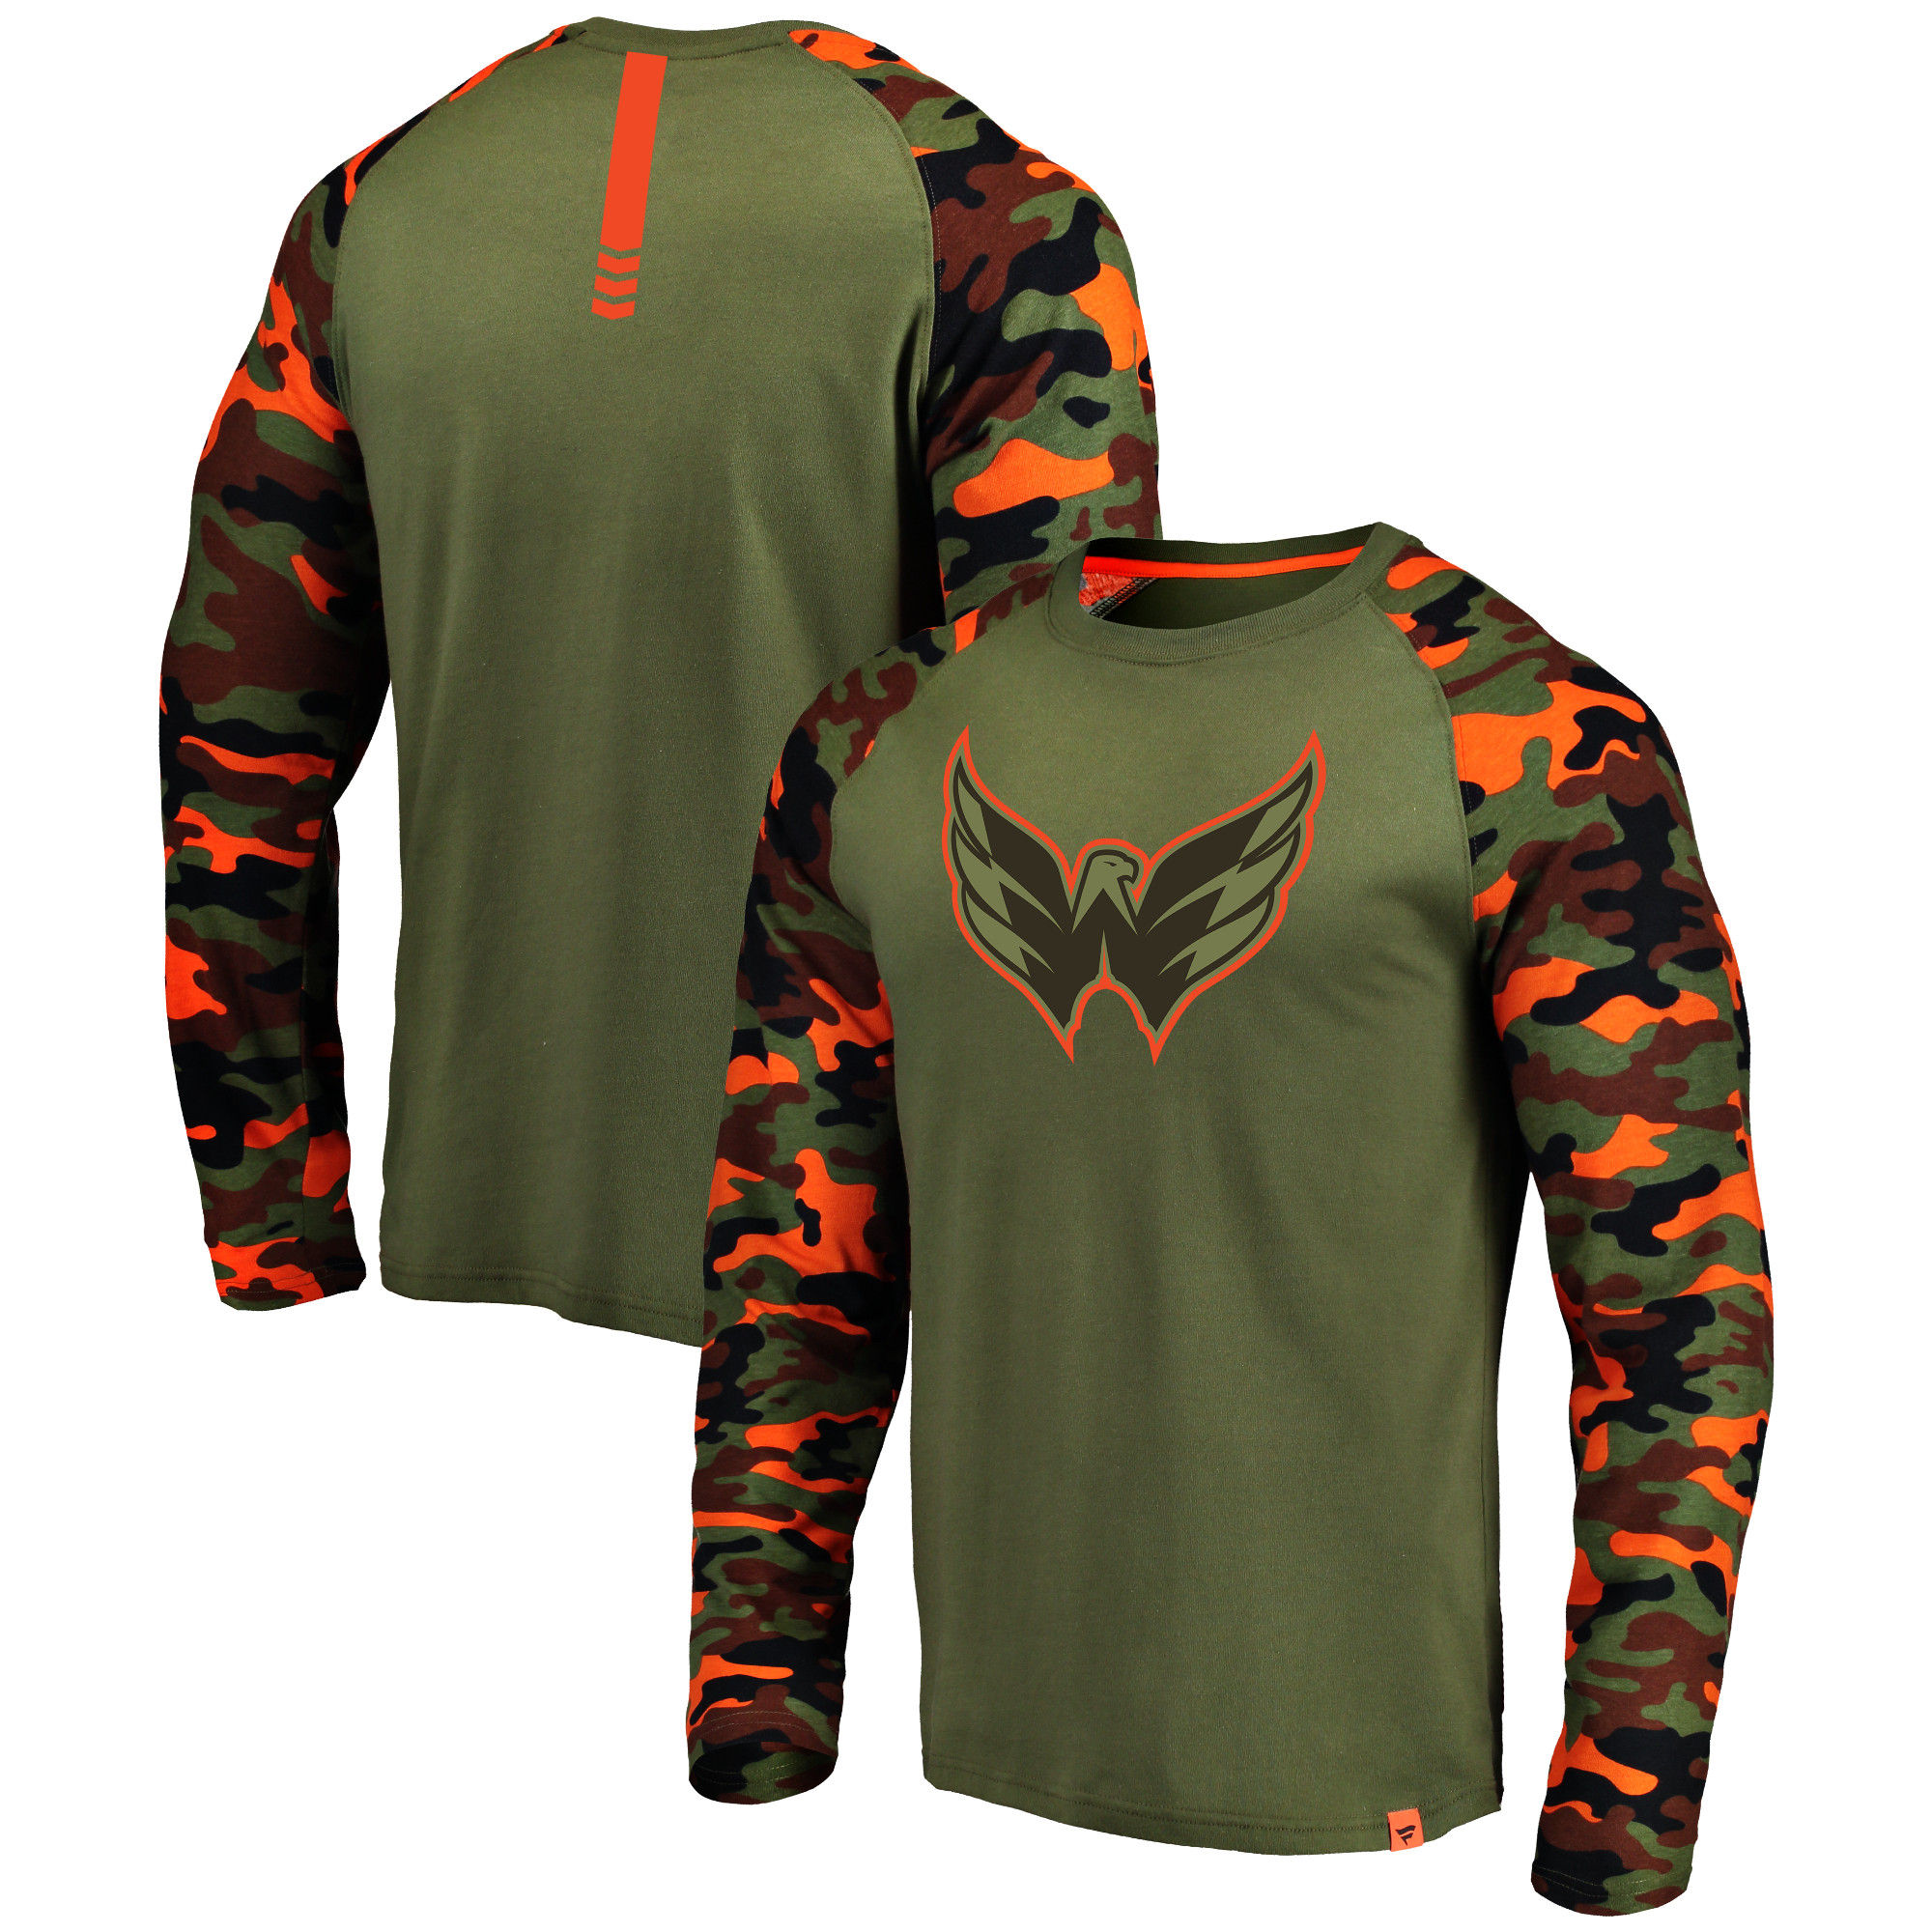 Washington Capitals Fanatics Branded Olive/Camo Recon Long Sleeve Raglan T-Shirt